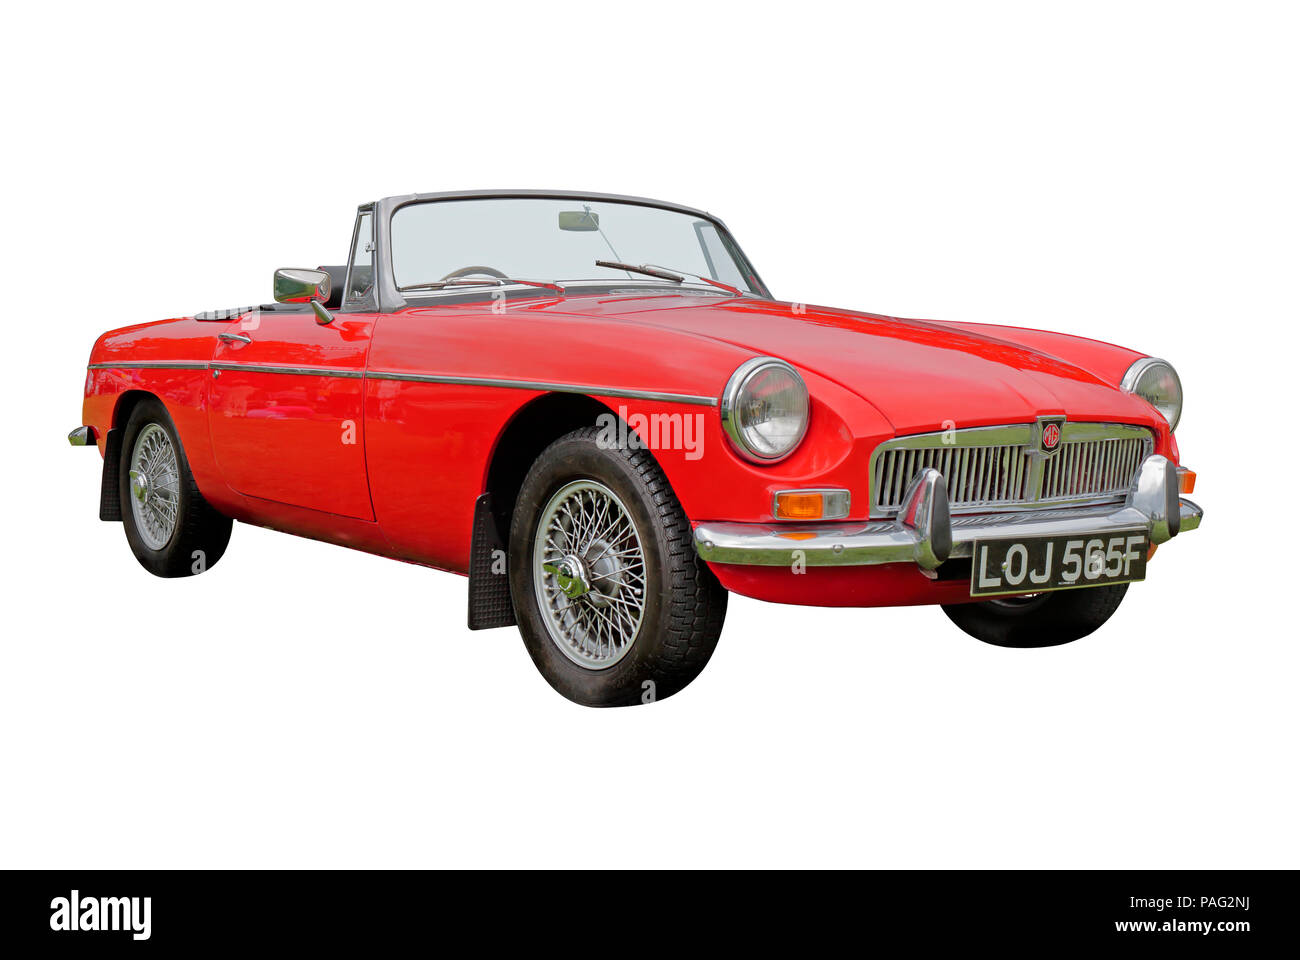 Red 1967 MGB Roadster isolated on a white background - Stock Image